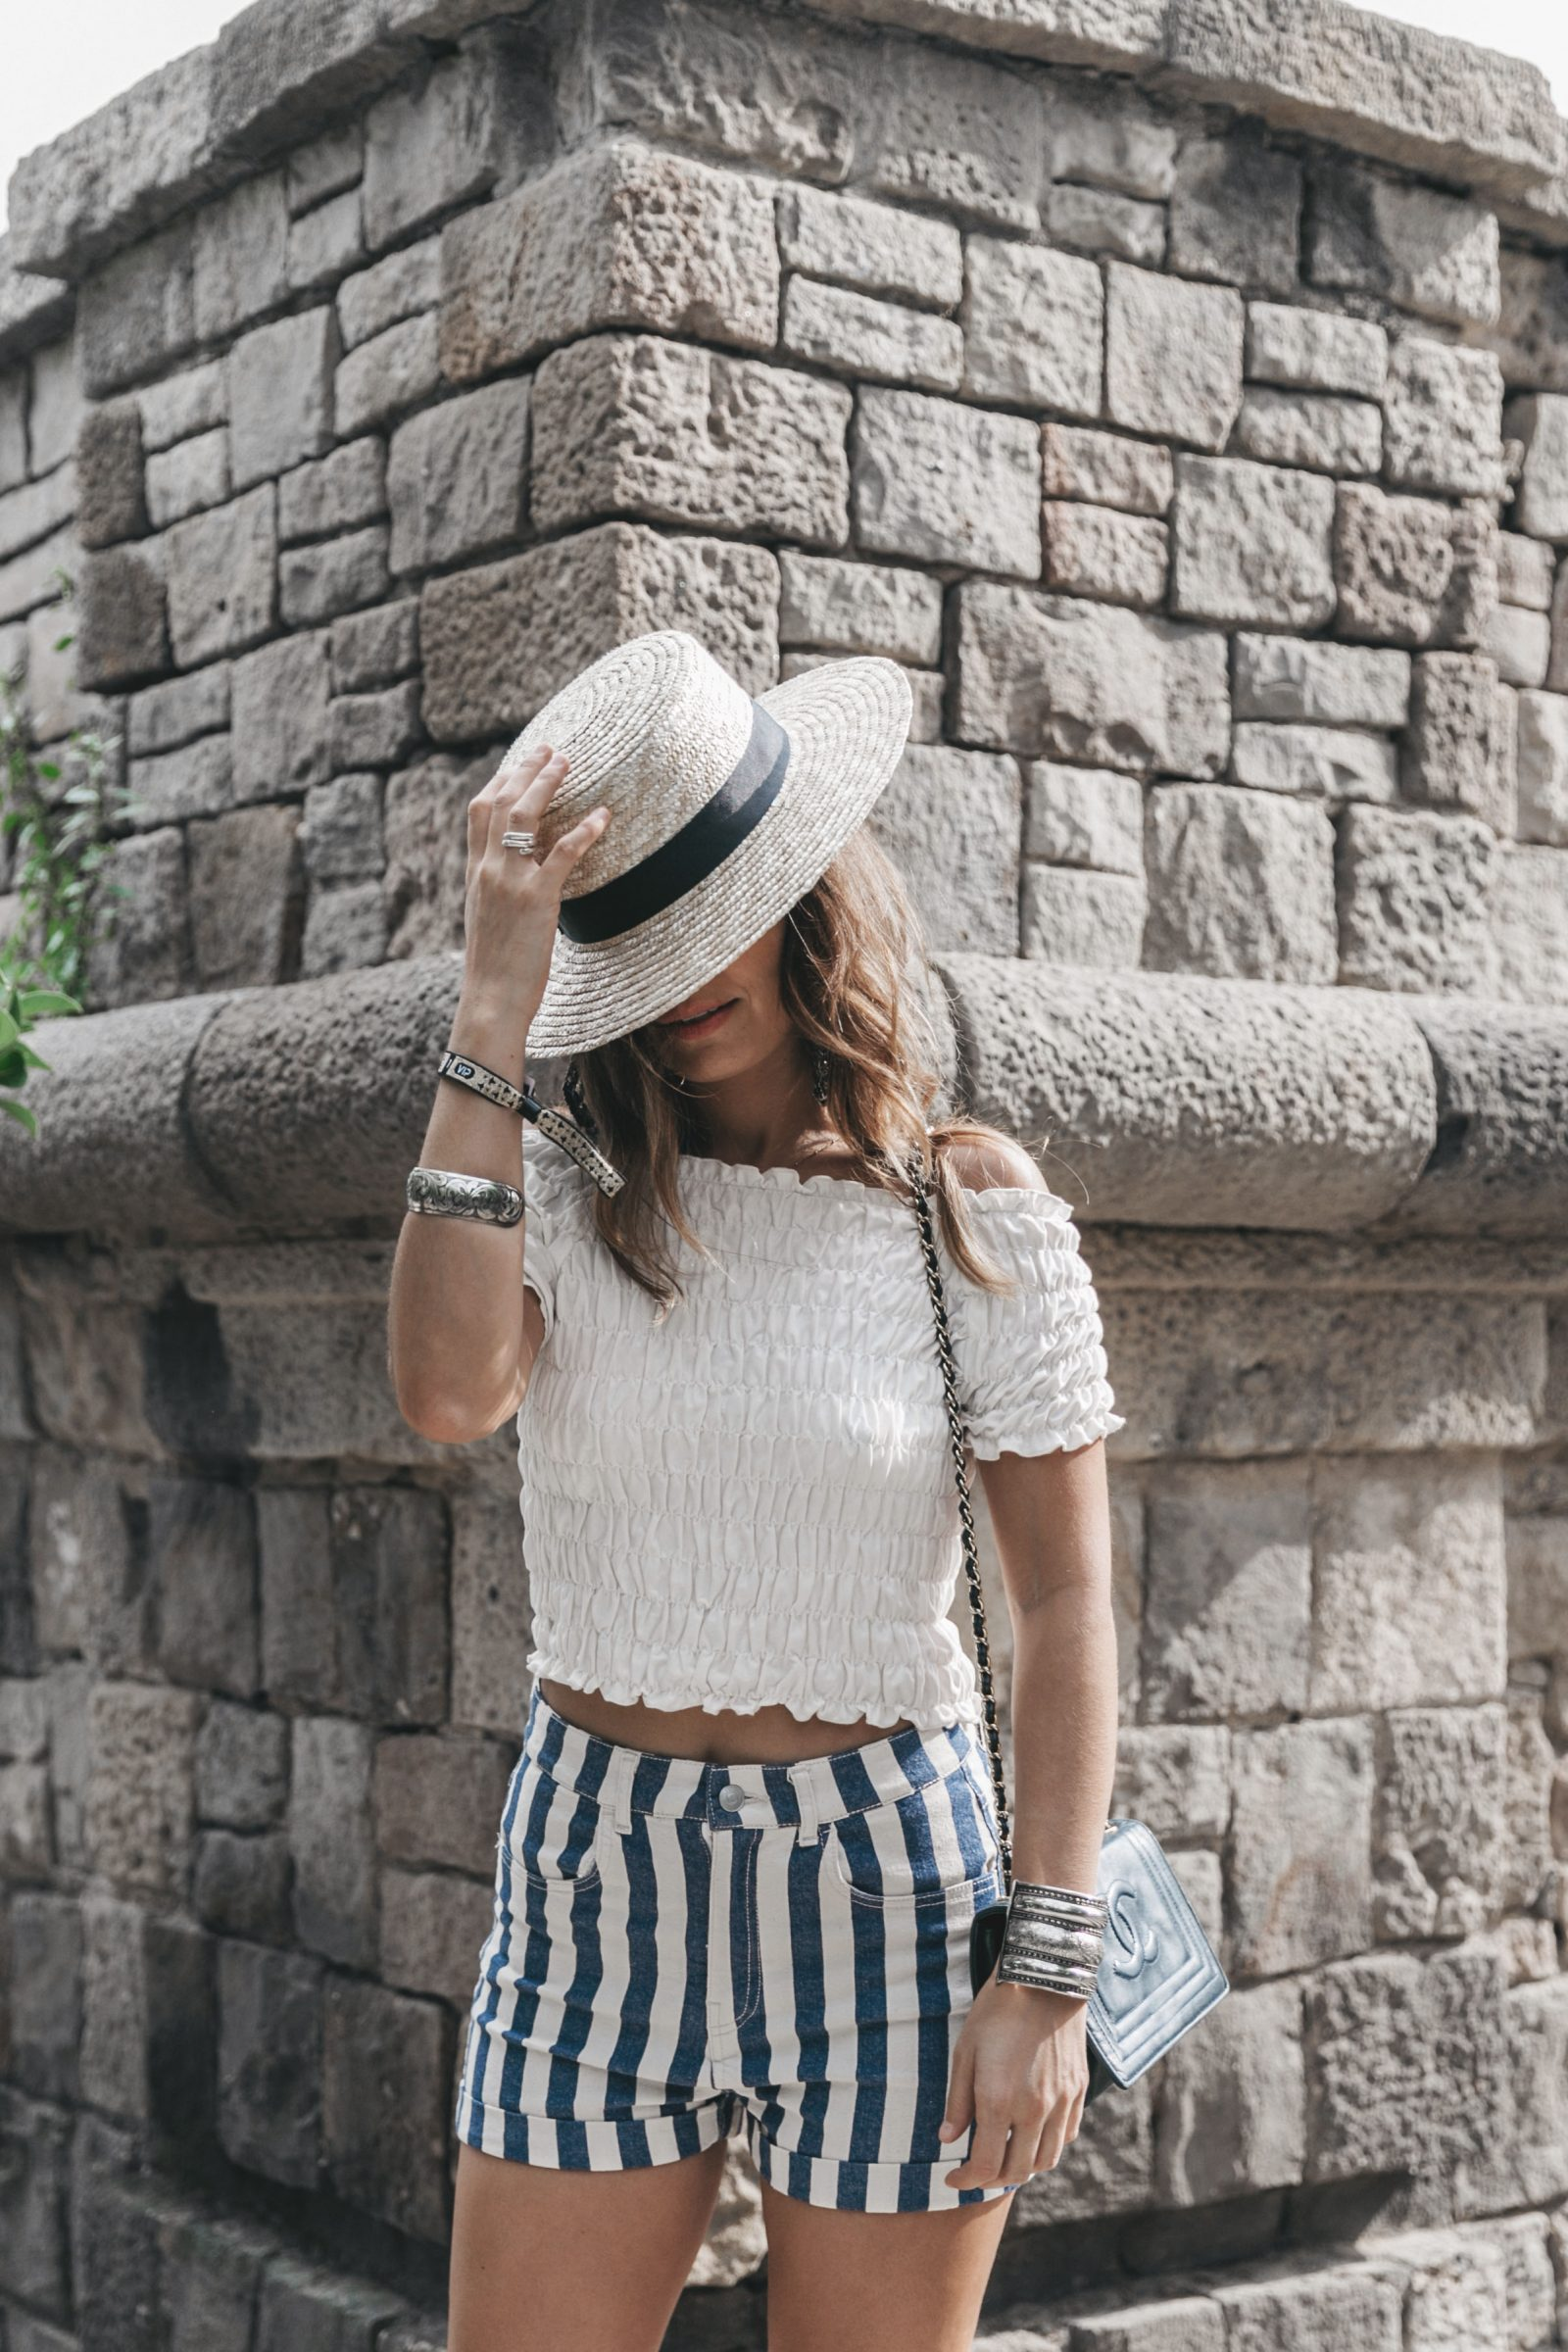 Primavera_Sound-HM-Stripped_Shorts-Canotier-Hat-Espadrilles-Outfit-Summer-Collage_Vintage-35